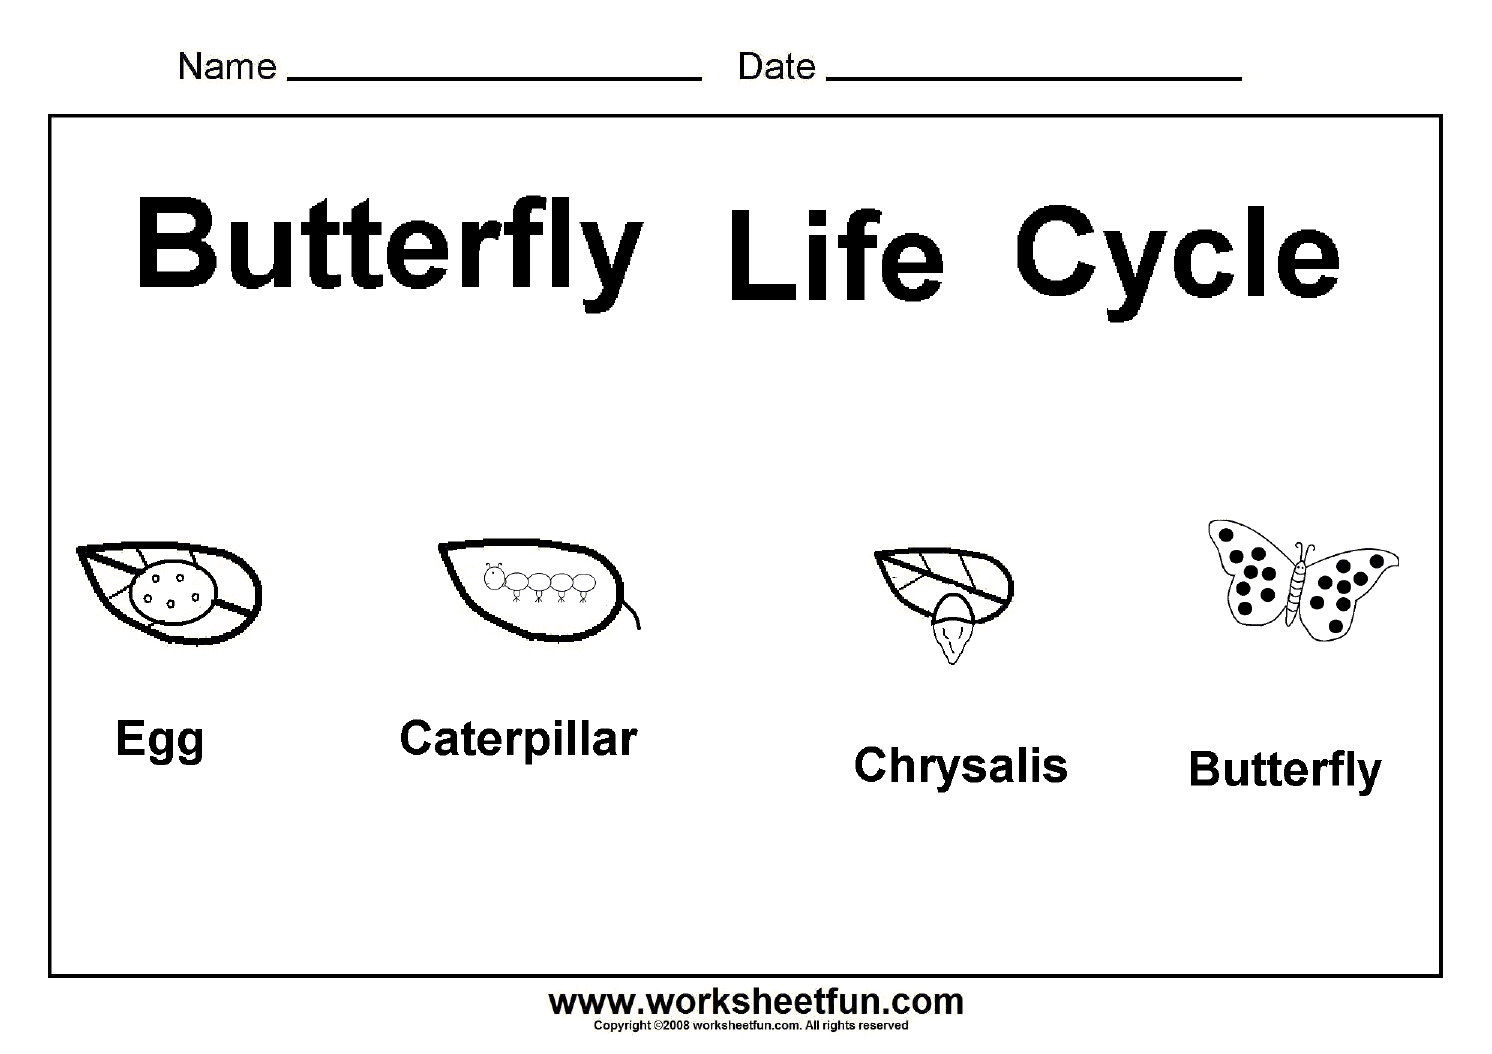 Free coloring pages of butterfly life cycle - Free Worksheet Butterfly Life Cycle Worksheet Butterfly Life Cycle Template A 39 S Preschool Coloring Pages